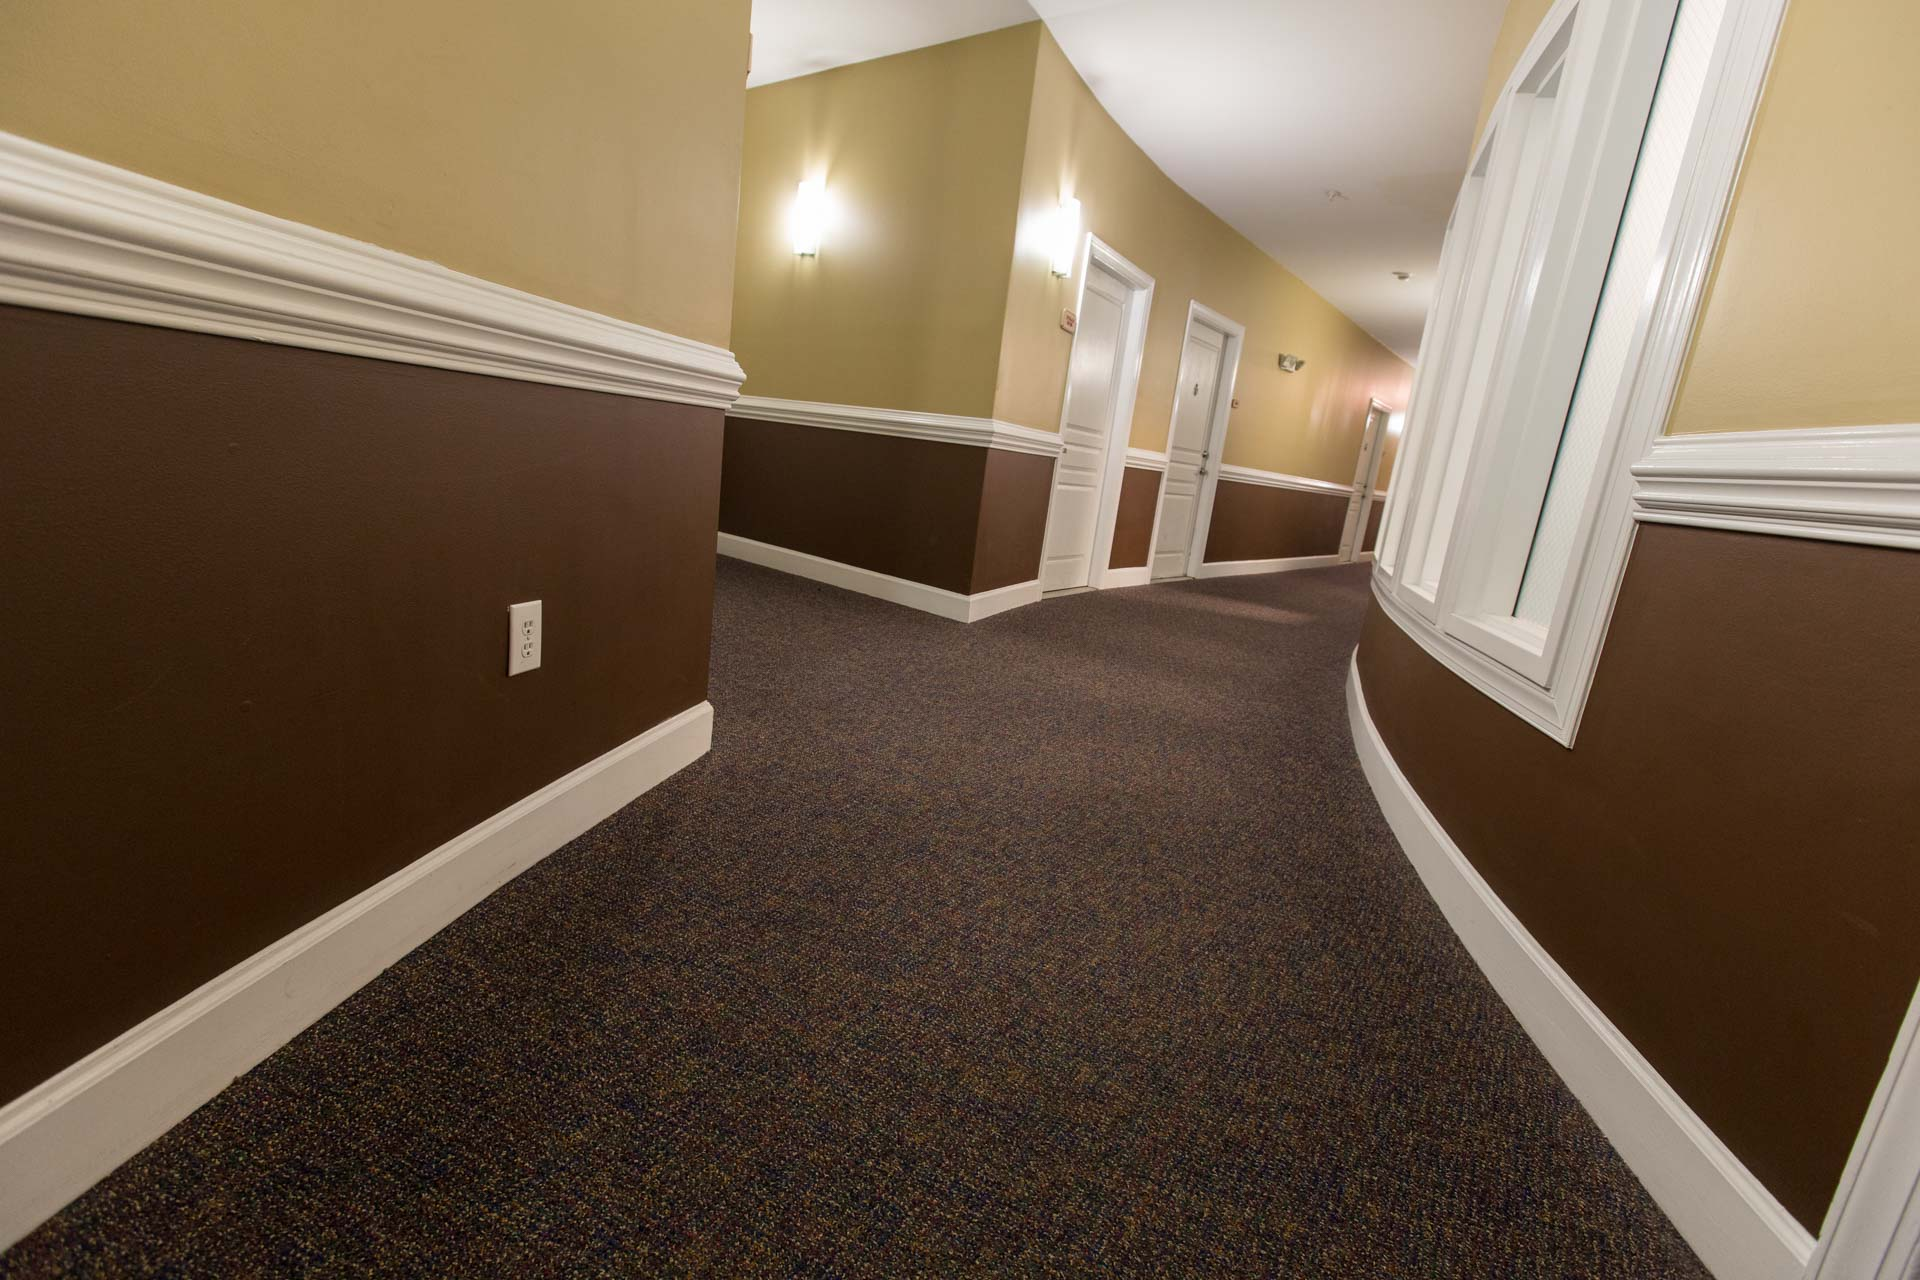 Sound Absorbing Hallway Carpet